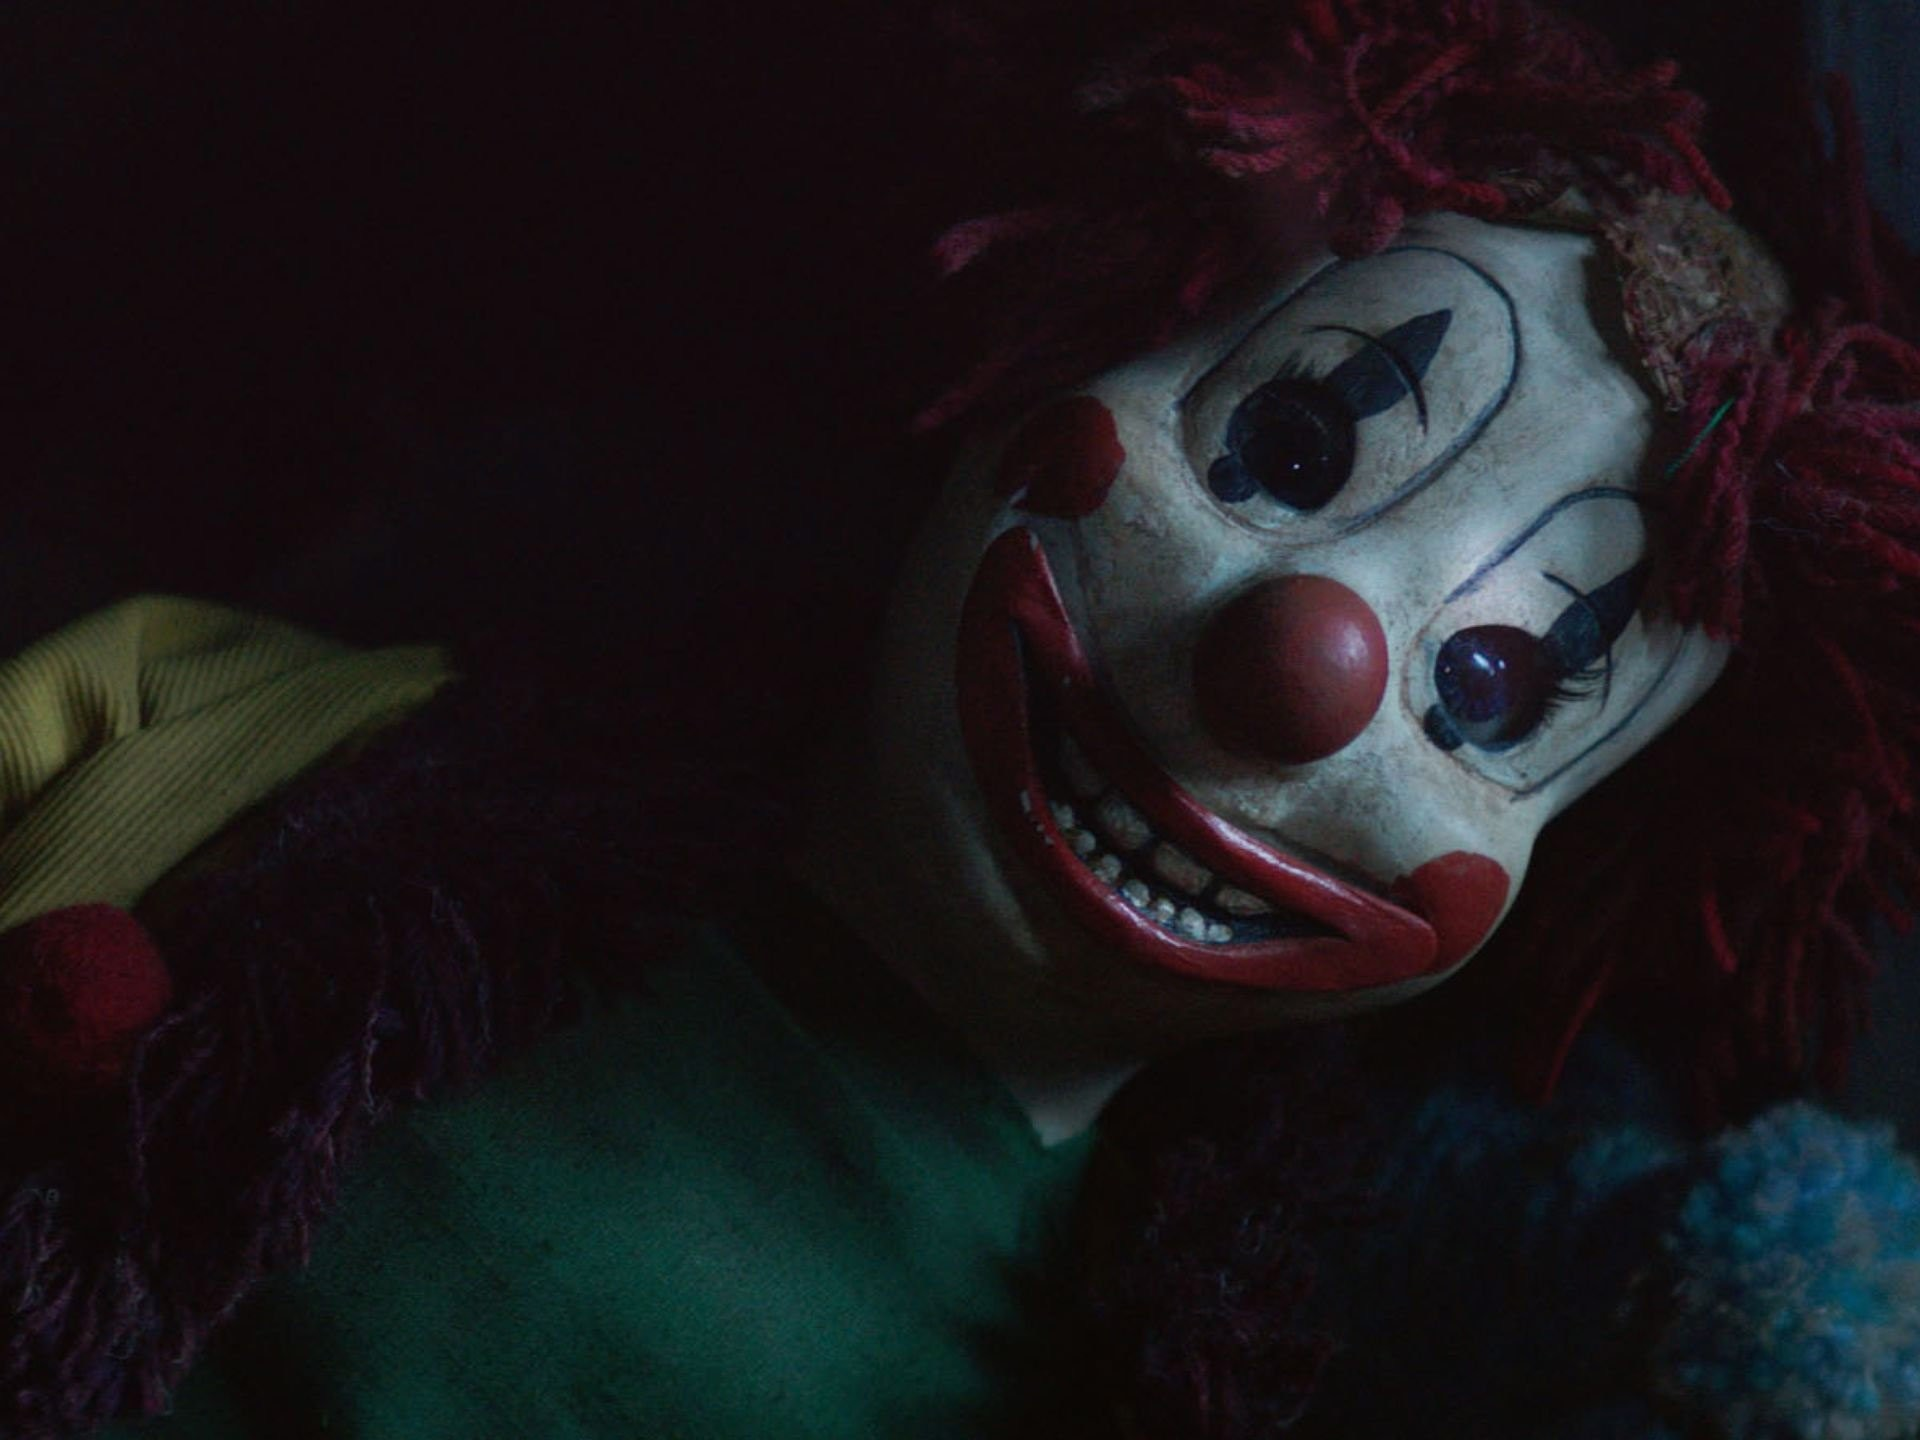 Creepy Clown Wallpaper 1